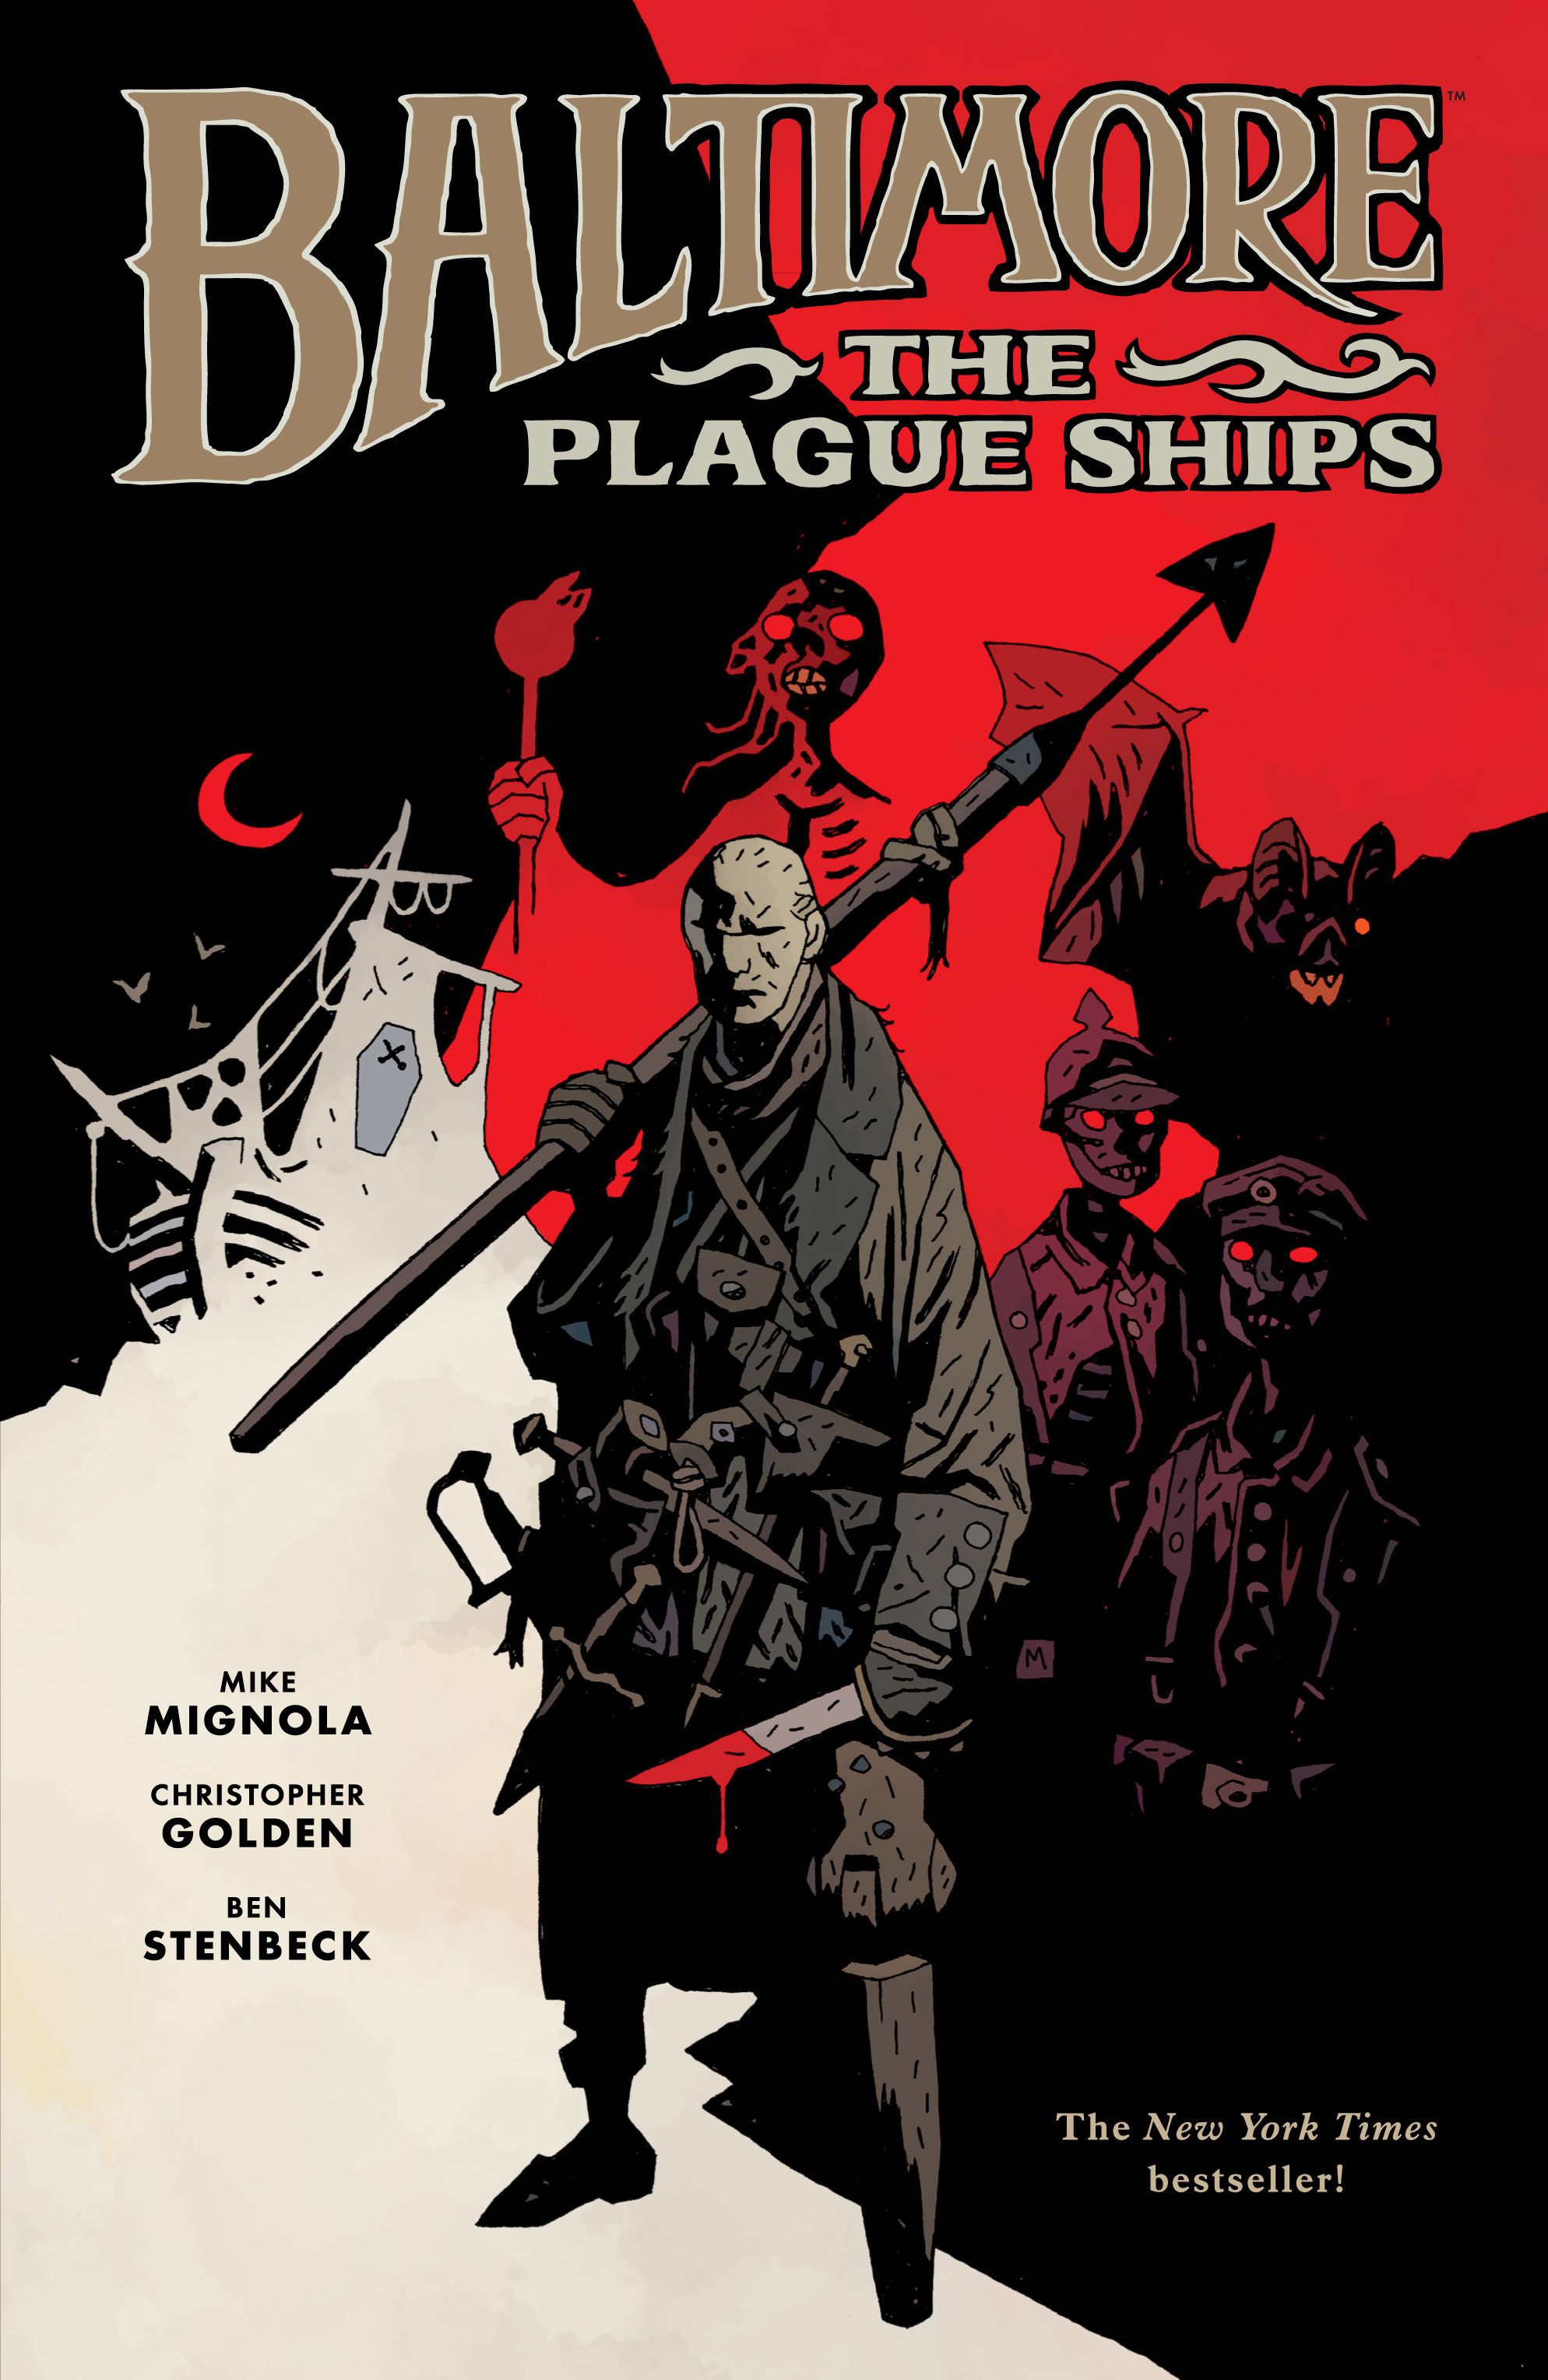 Read online Baltimore: The Plague Ships comic -  Issue # TPB - 1